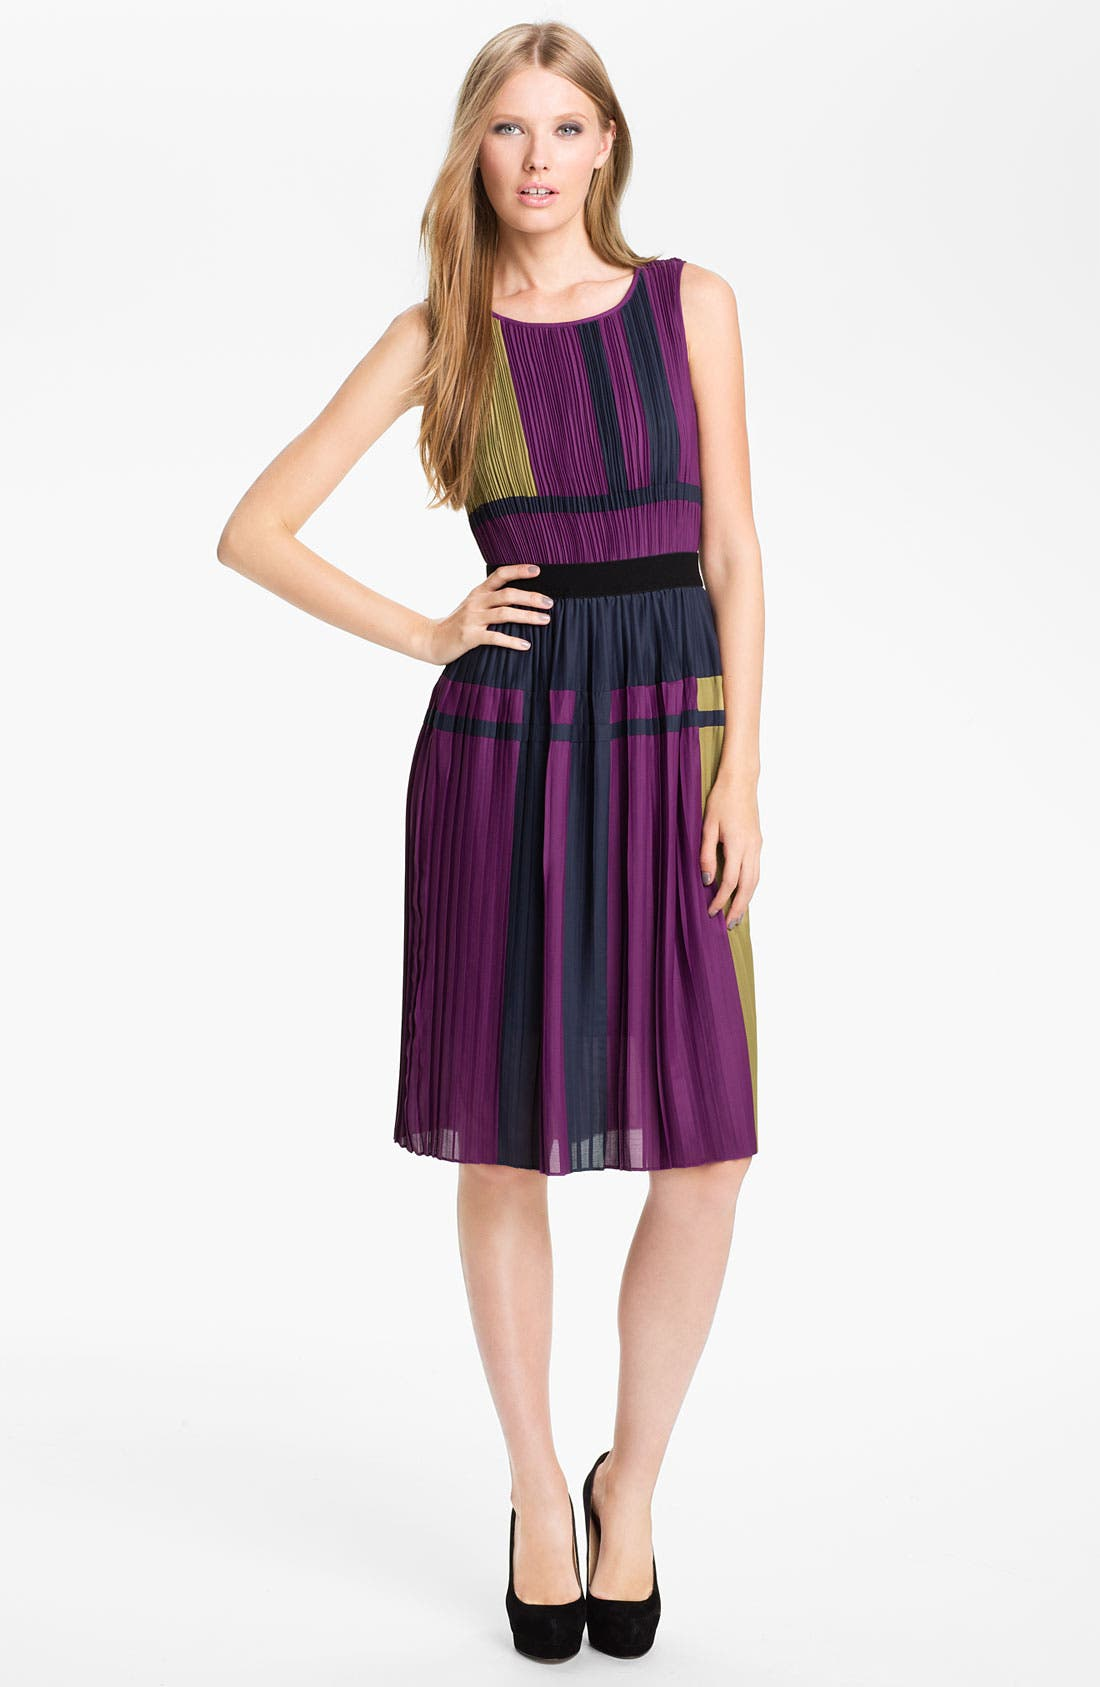 Alternate Image 1 Selected - BCBGMAXAZRIA Pleated Colorblock Chiffon Dress